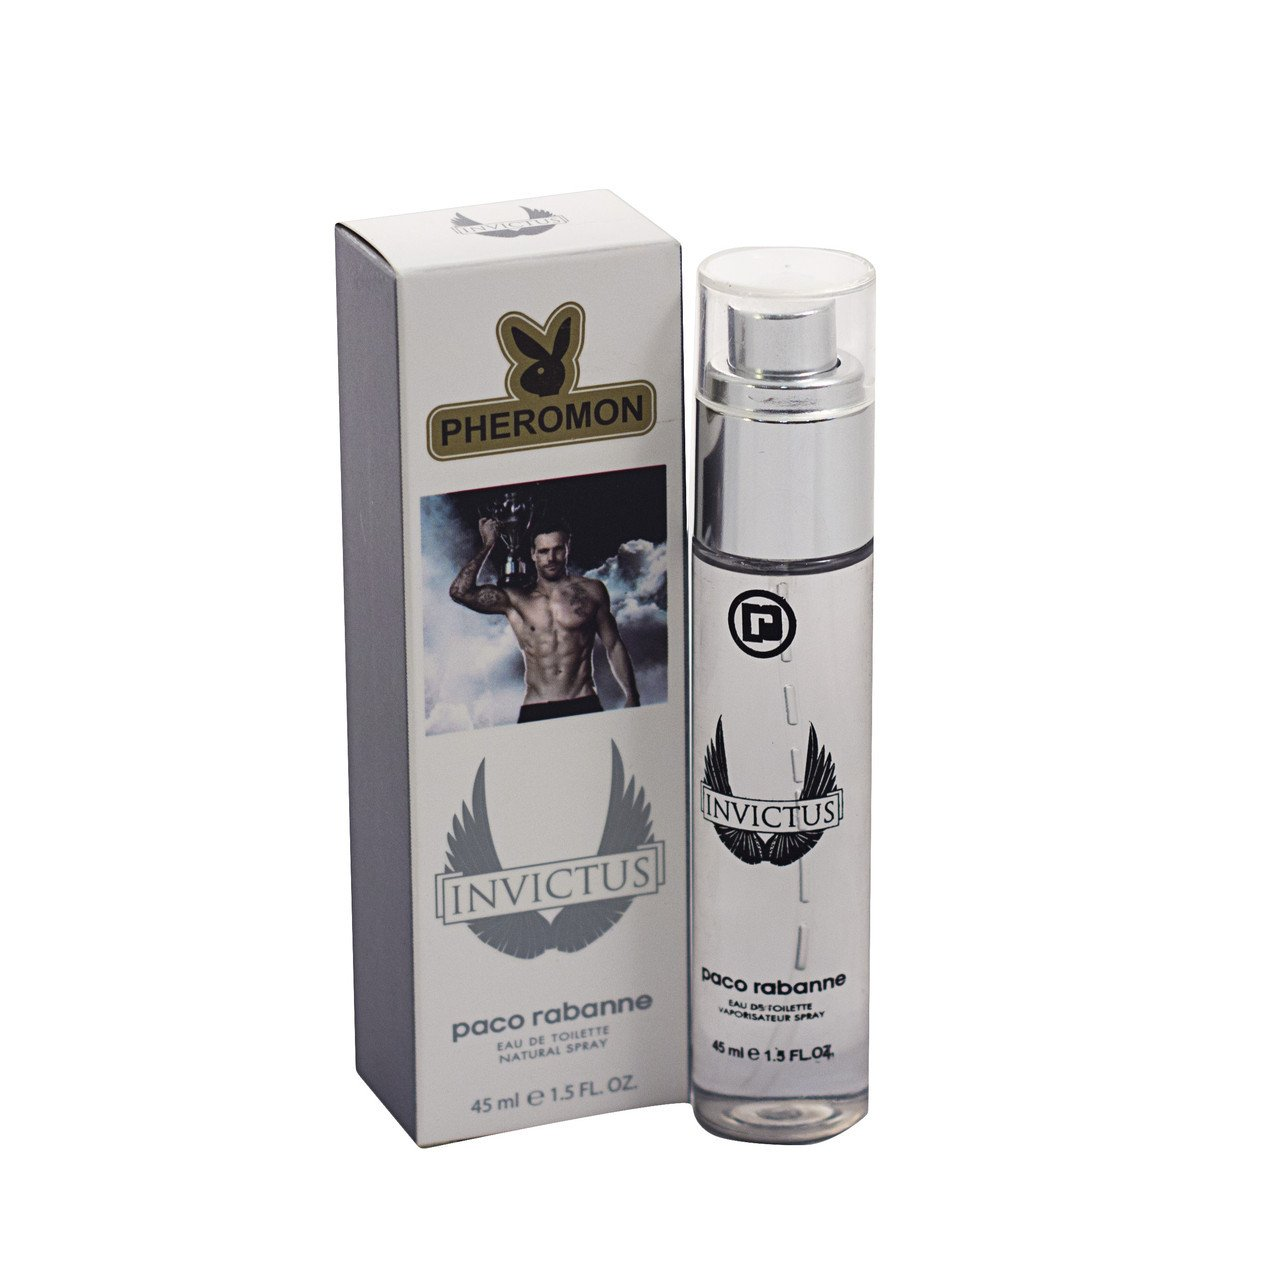 Paco Rabanne Invictus edt - Pheromone Tube 45 ml